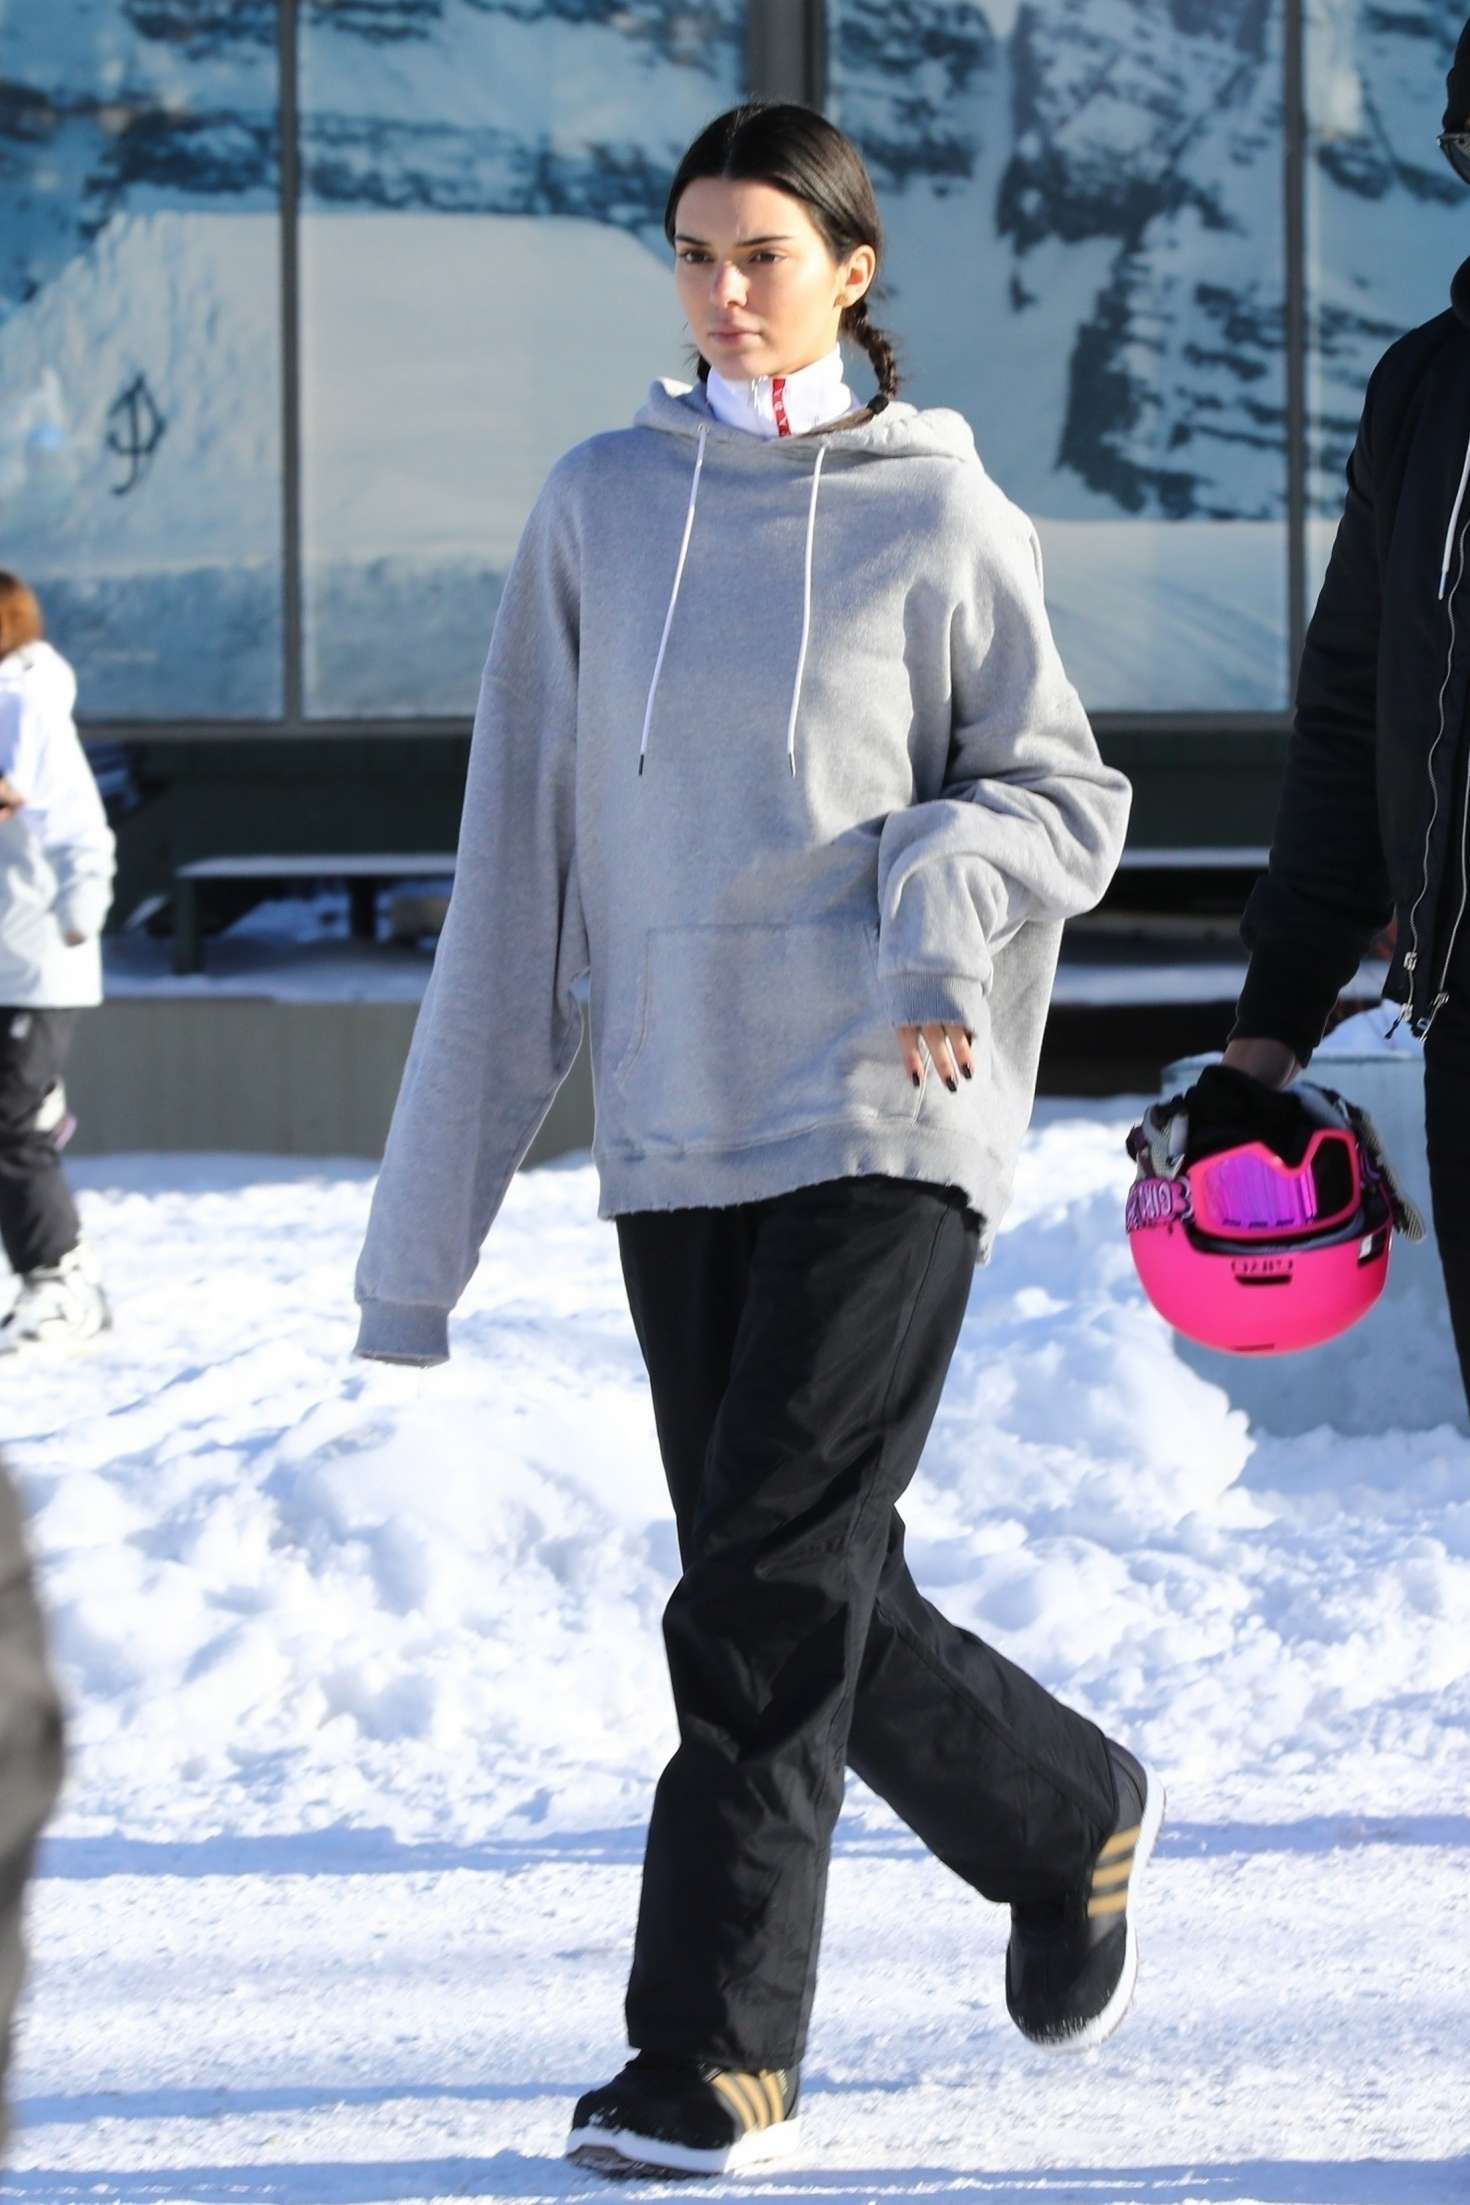 Kendall Jenner rocking a oversized grey sweatshirt with a woolen fabric, extra long sleeves and ribbed hem